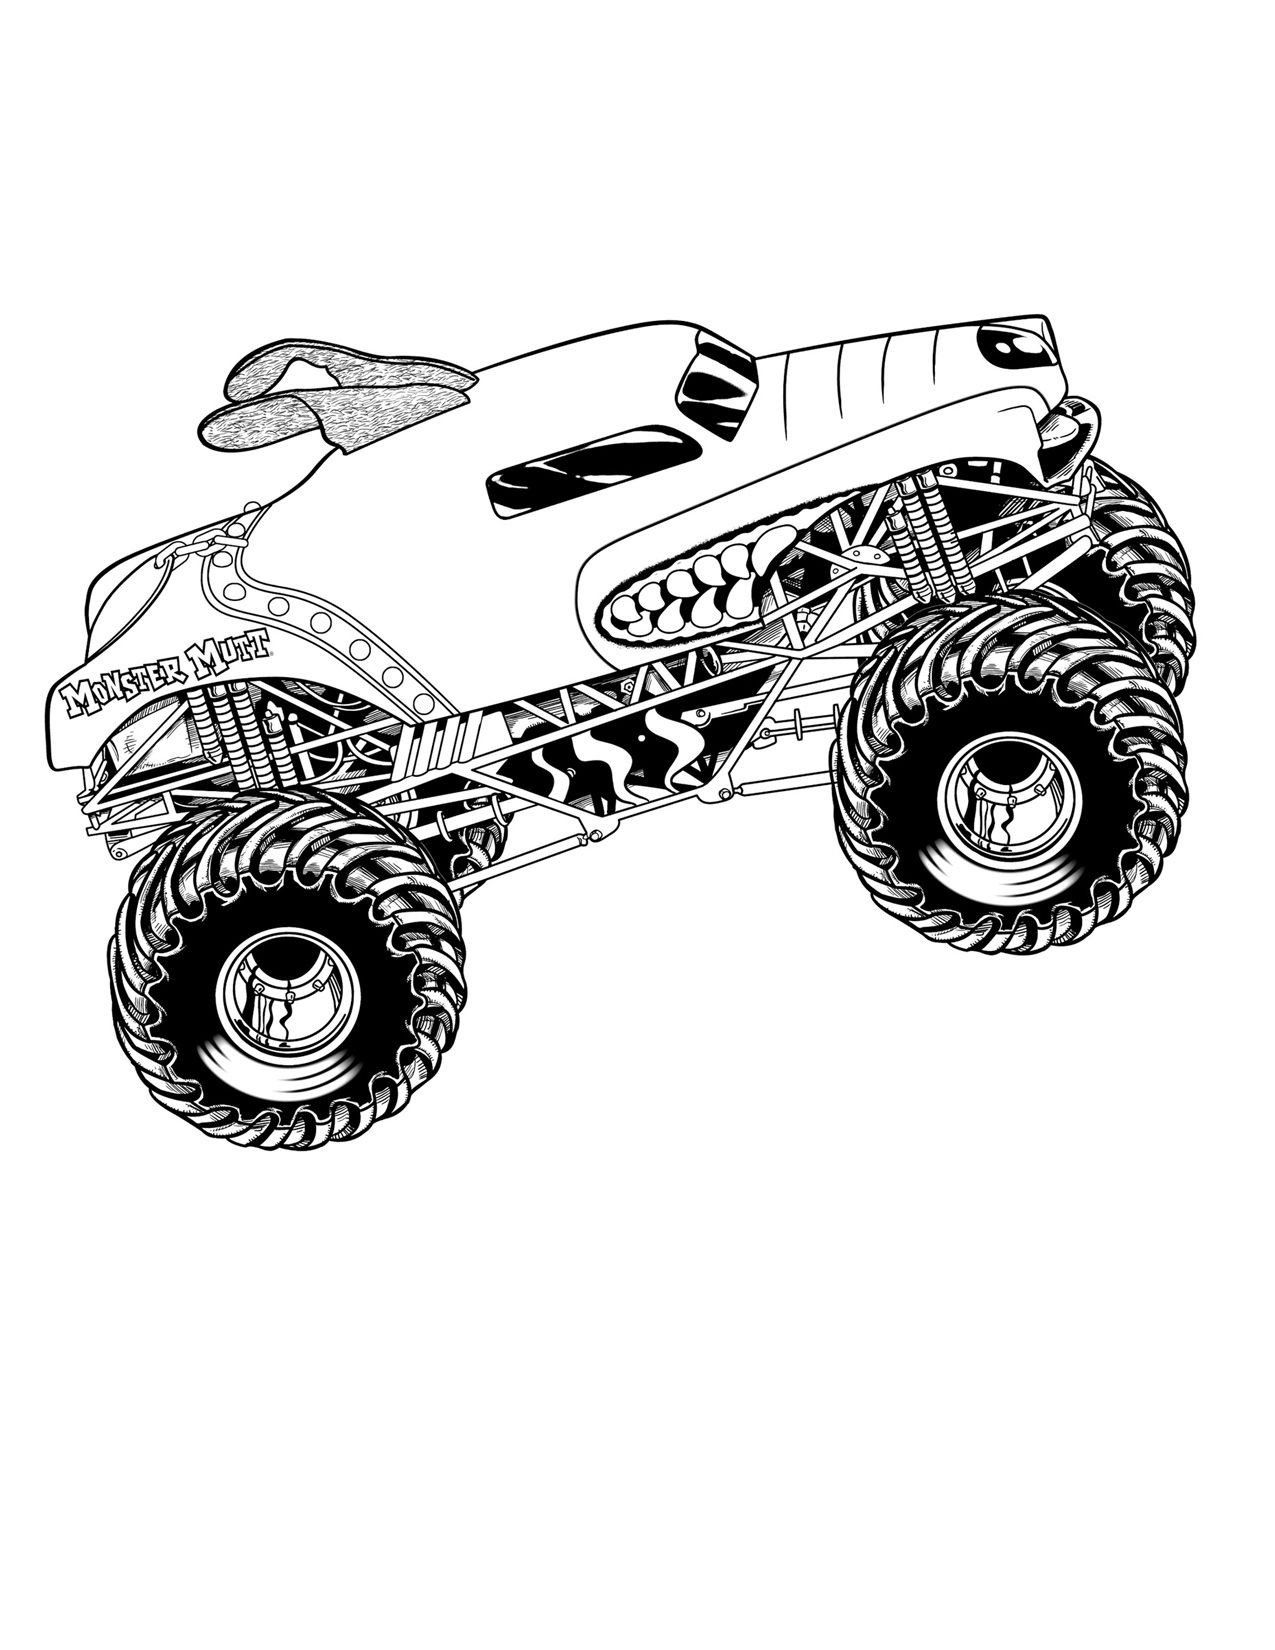 Monster Truck Coloring Pages Fresh Coloring Page Monster Truck Dragon Coloring Pages Best Monster Truck Coloring Pages Truck Coloring Pages Monster Trucks